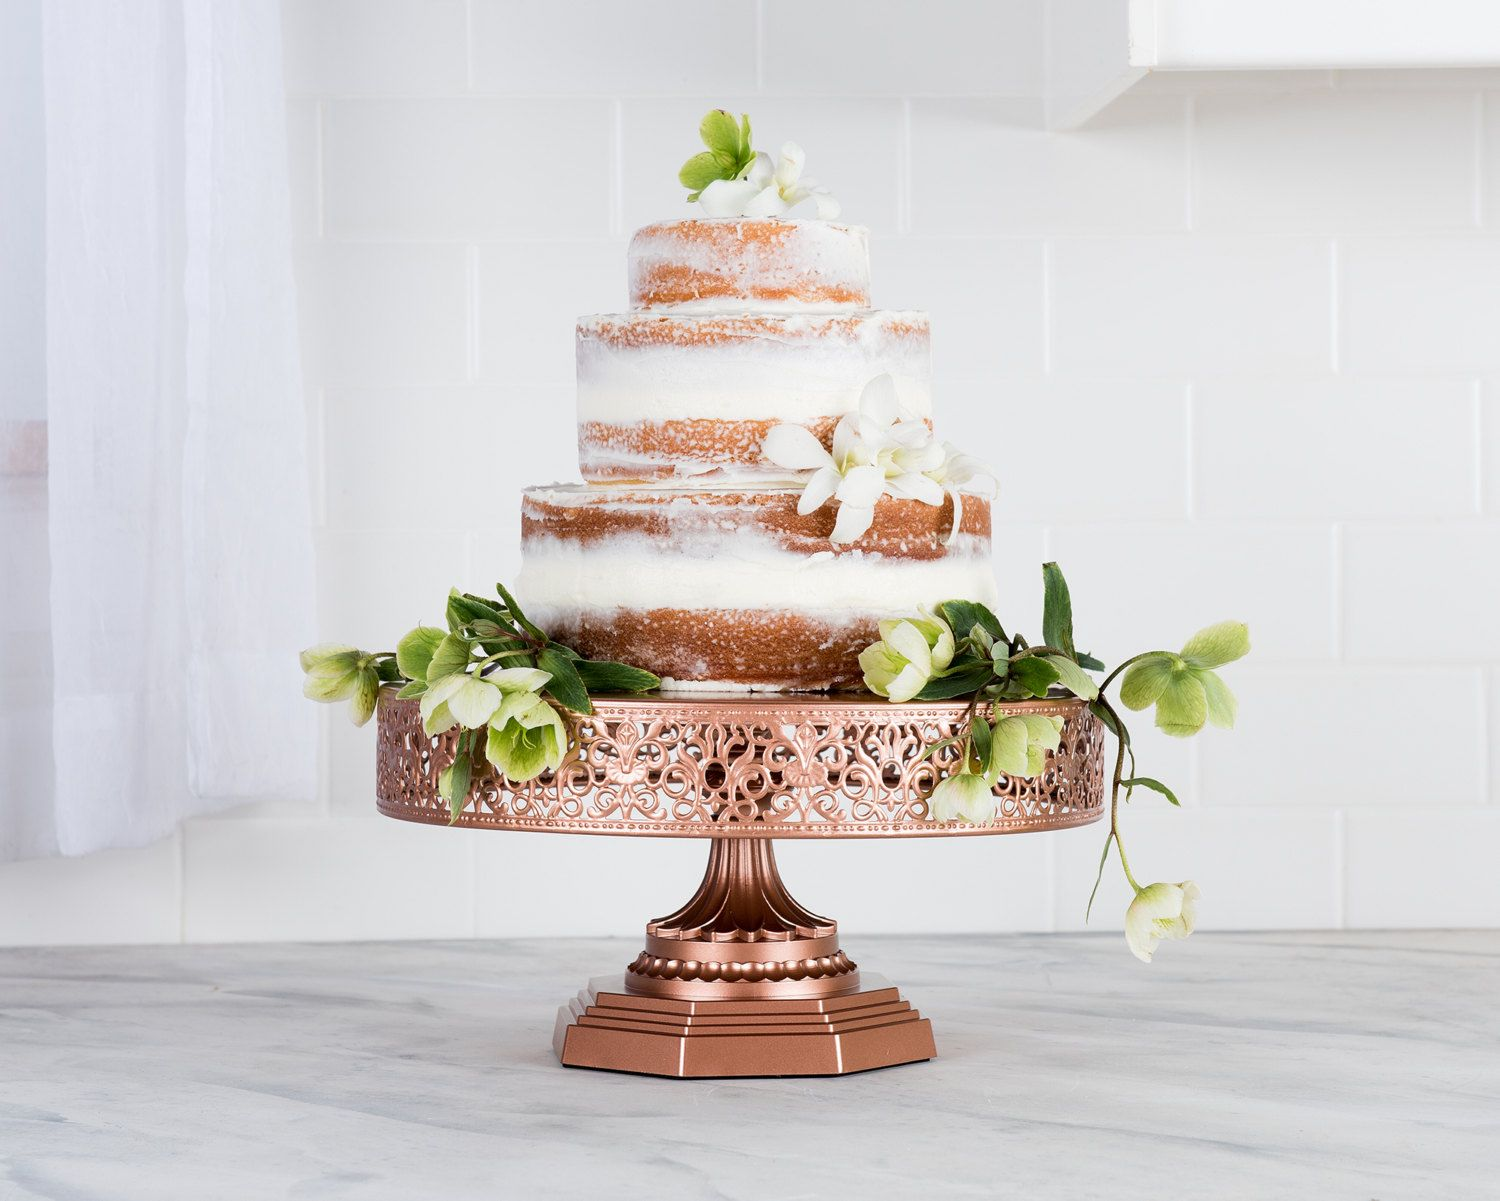 Rose Gold Cake Stand 12 Inch Round Cake Stand, Metal Cake Stand ...